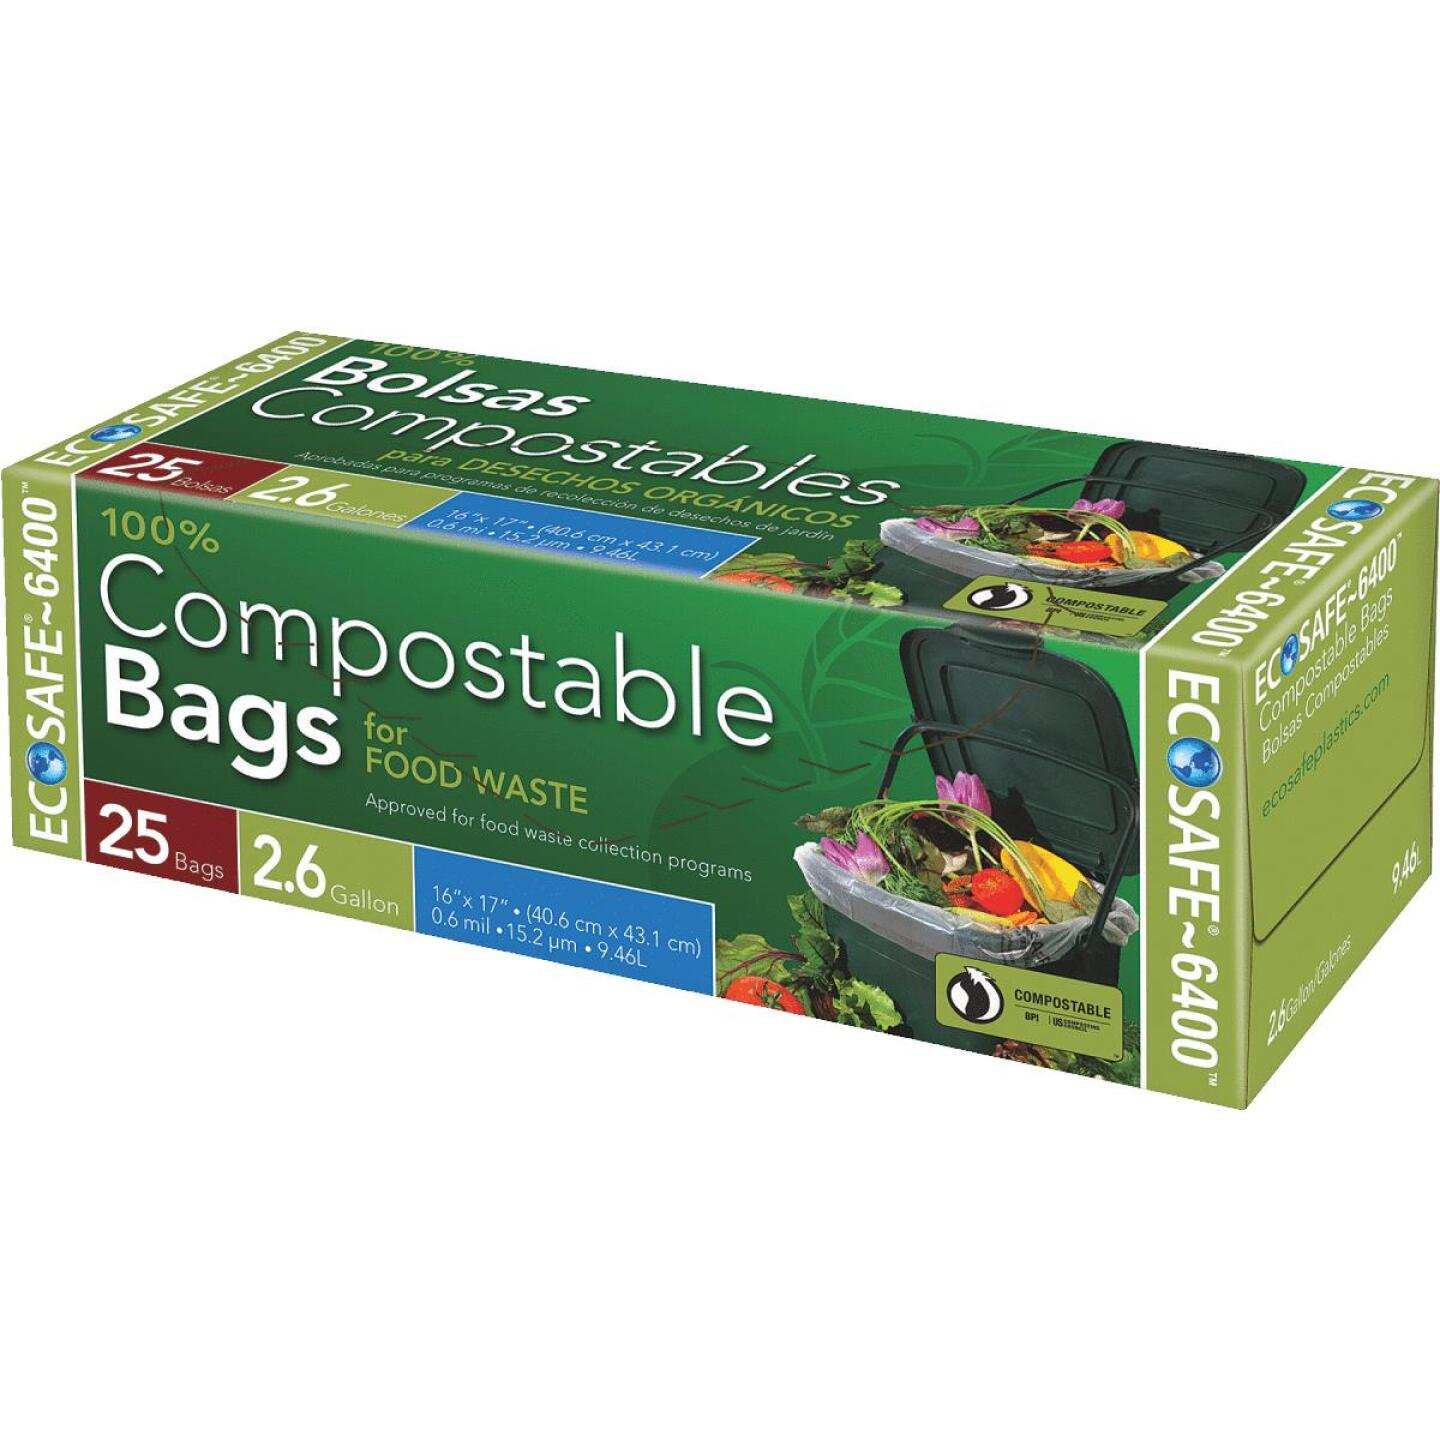 EcoSafe-6400 2.6 Gal. Compostable Green Trash Bag (25-Count) Image 1